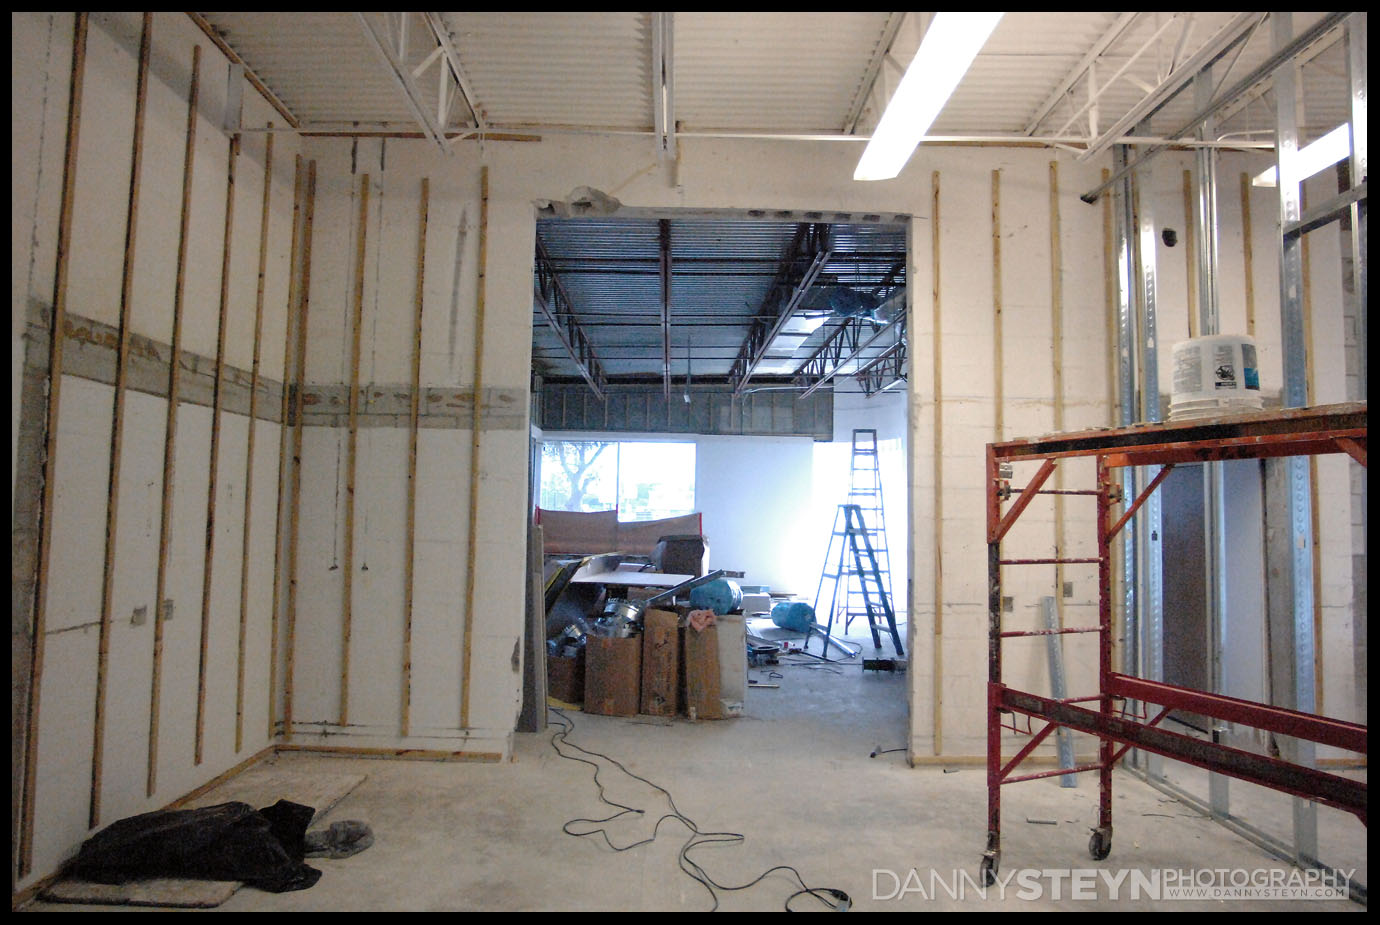 Furring strips for drywall going up in the Prop Room, looking into the Natural Light Studio